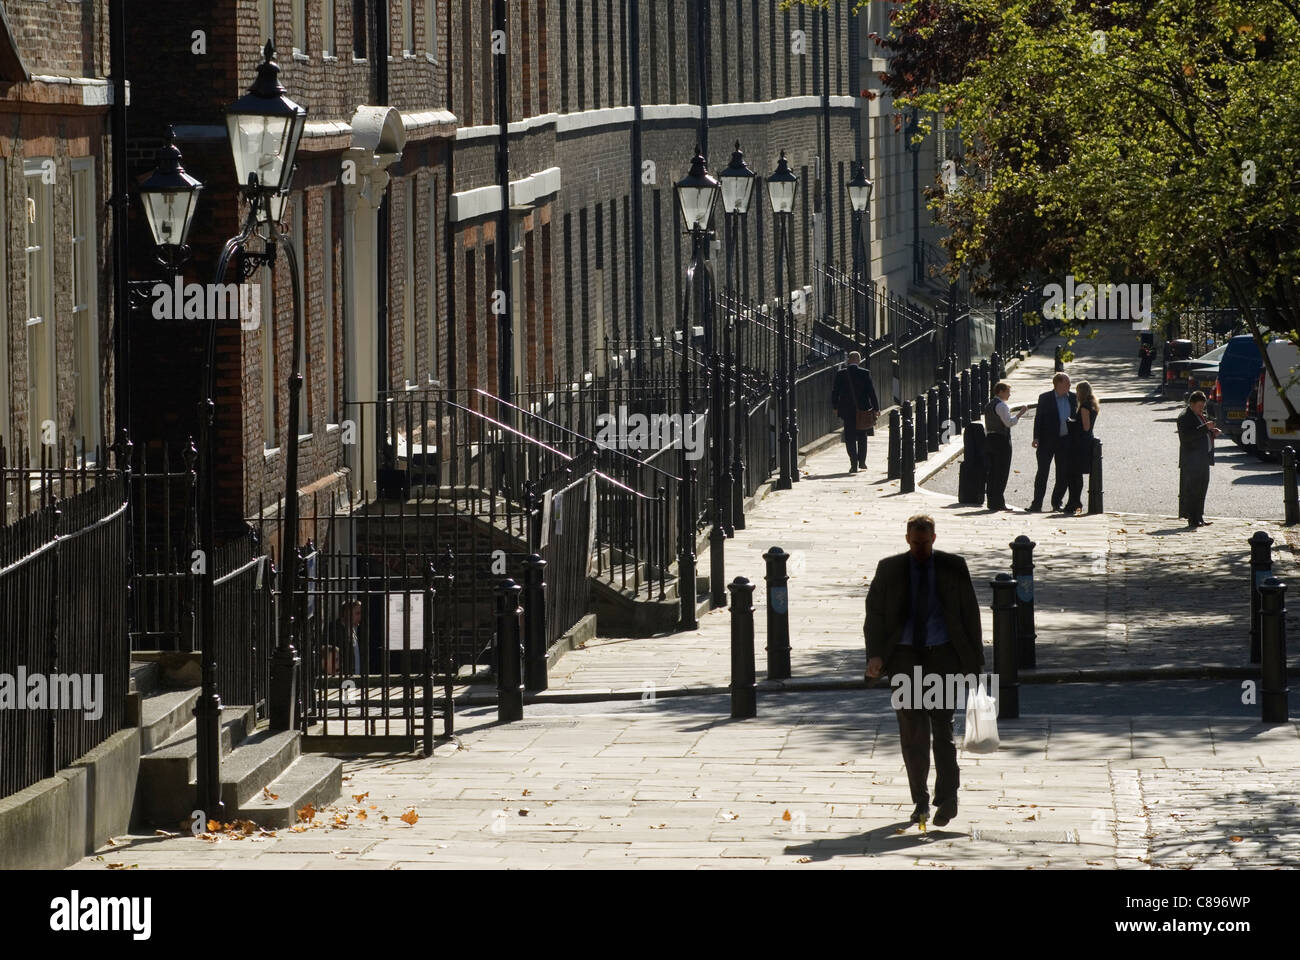 Kings Bench Walk, Inner Temple. Inns of Court. Solicitors Chambers buildings. London UK  HOMER SYKES - Stock Image